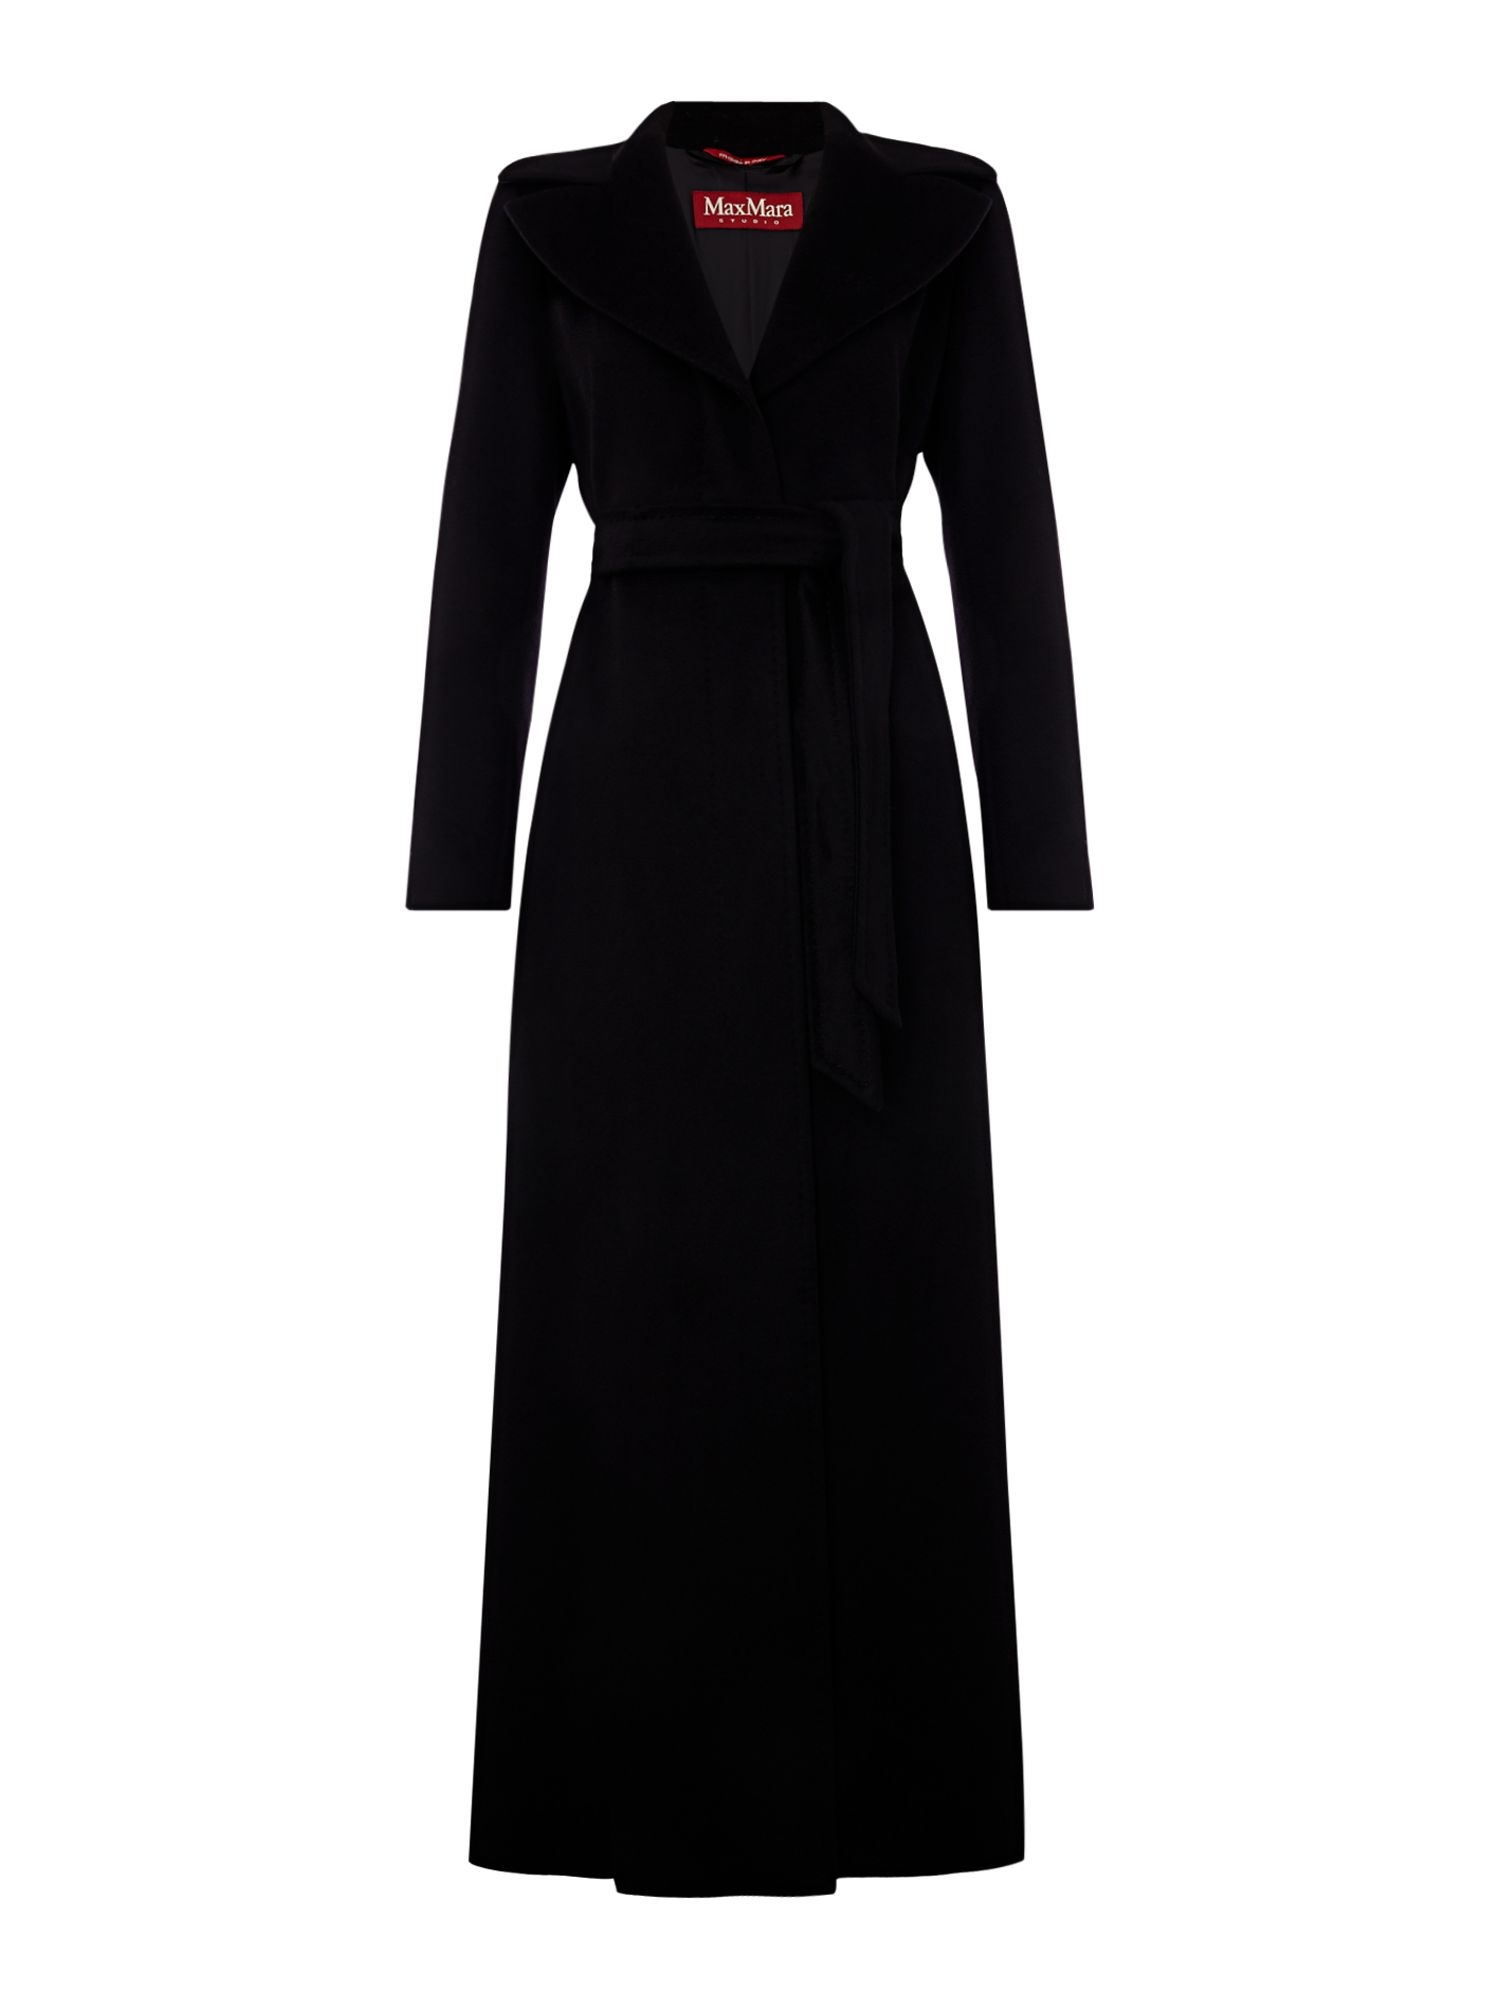 Max Mara Studio Long belted coat, Black